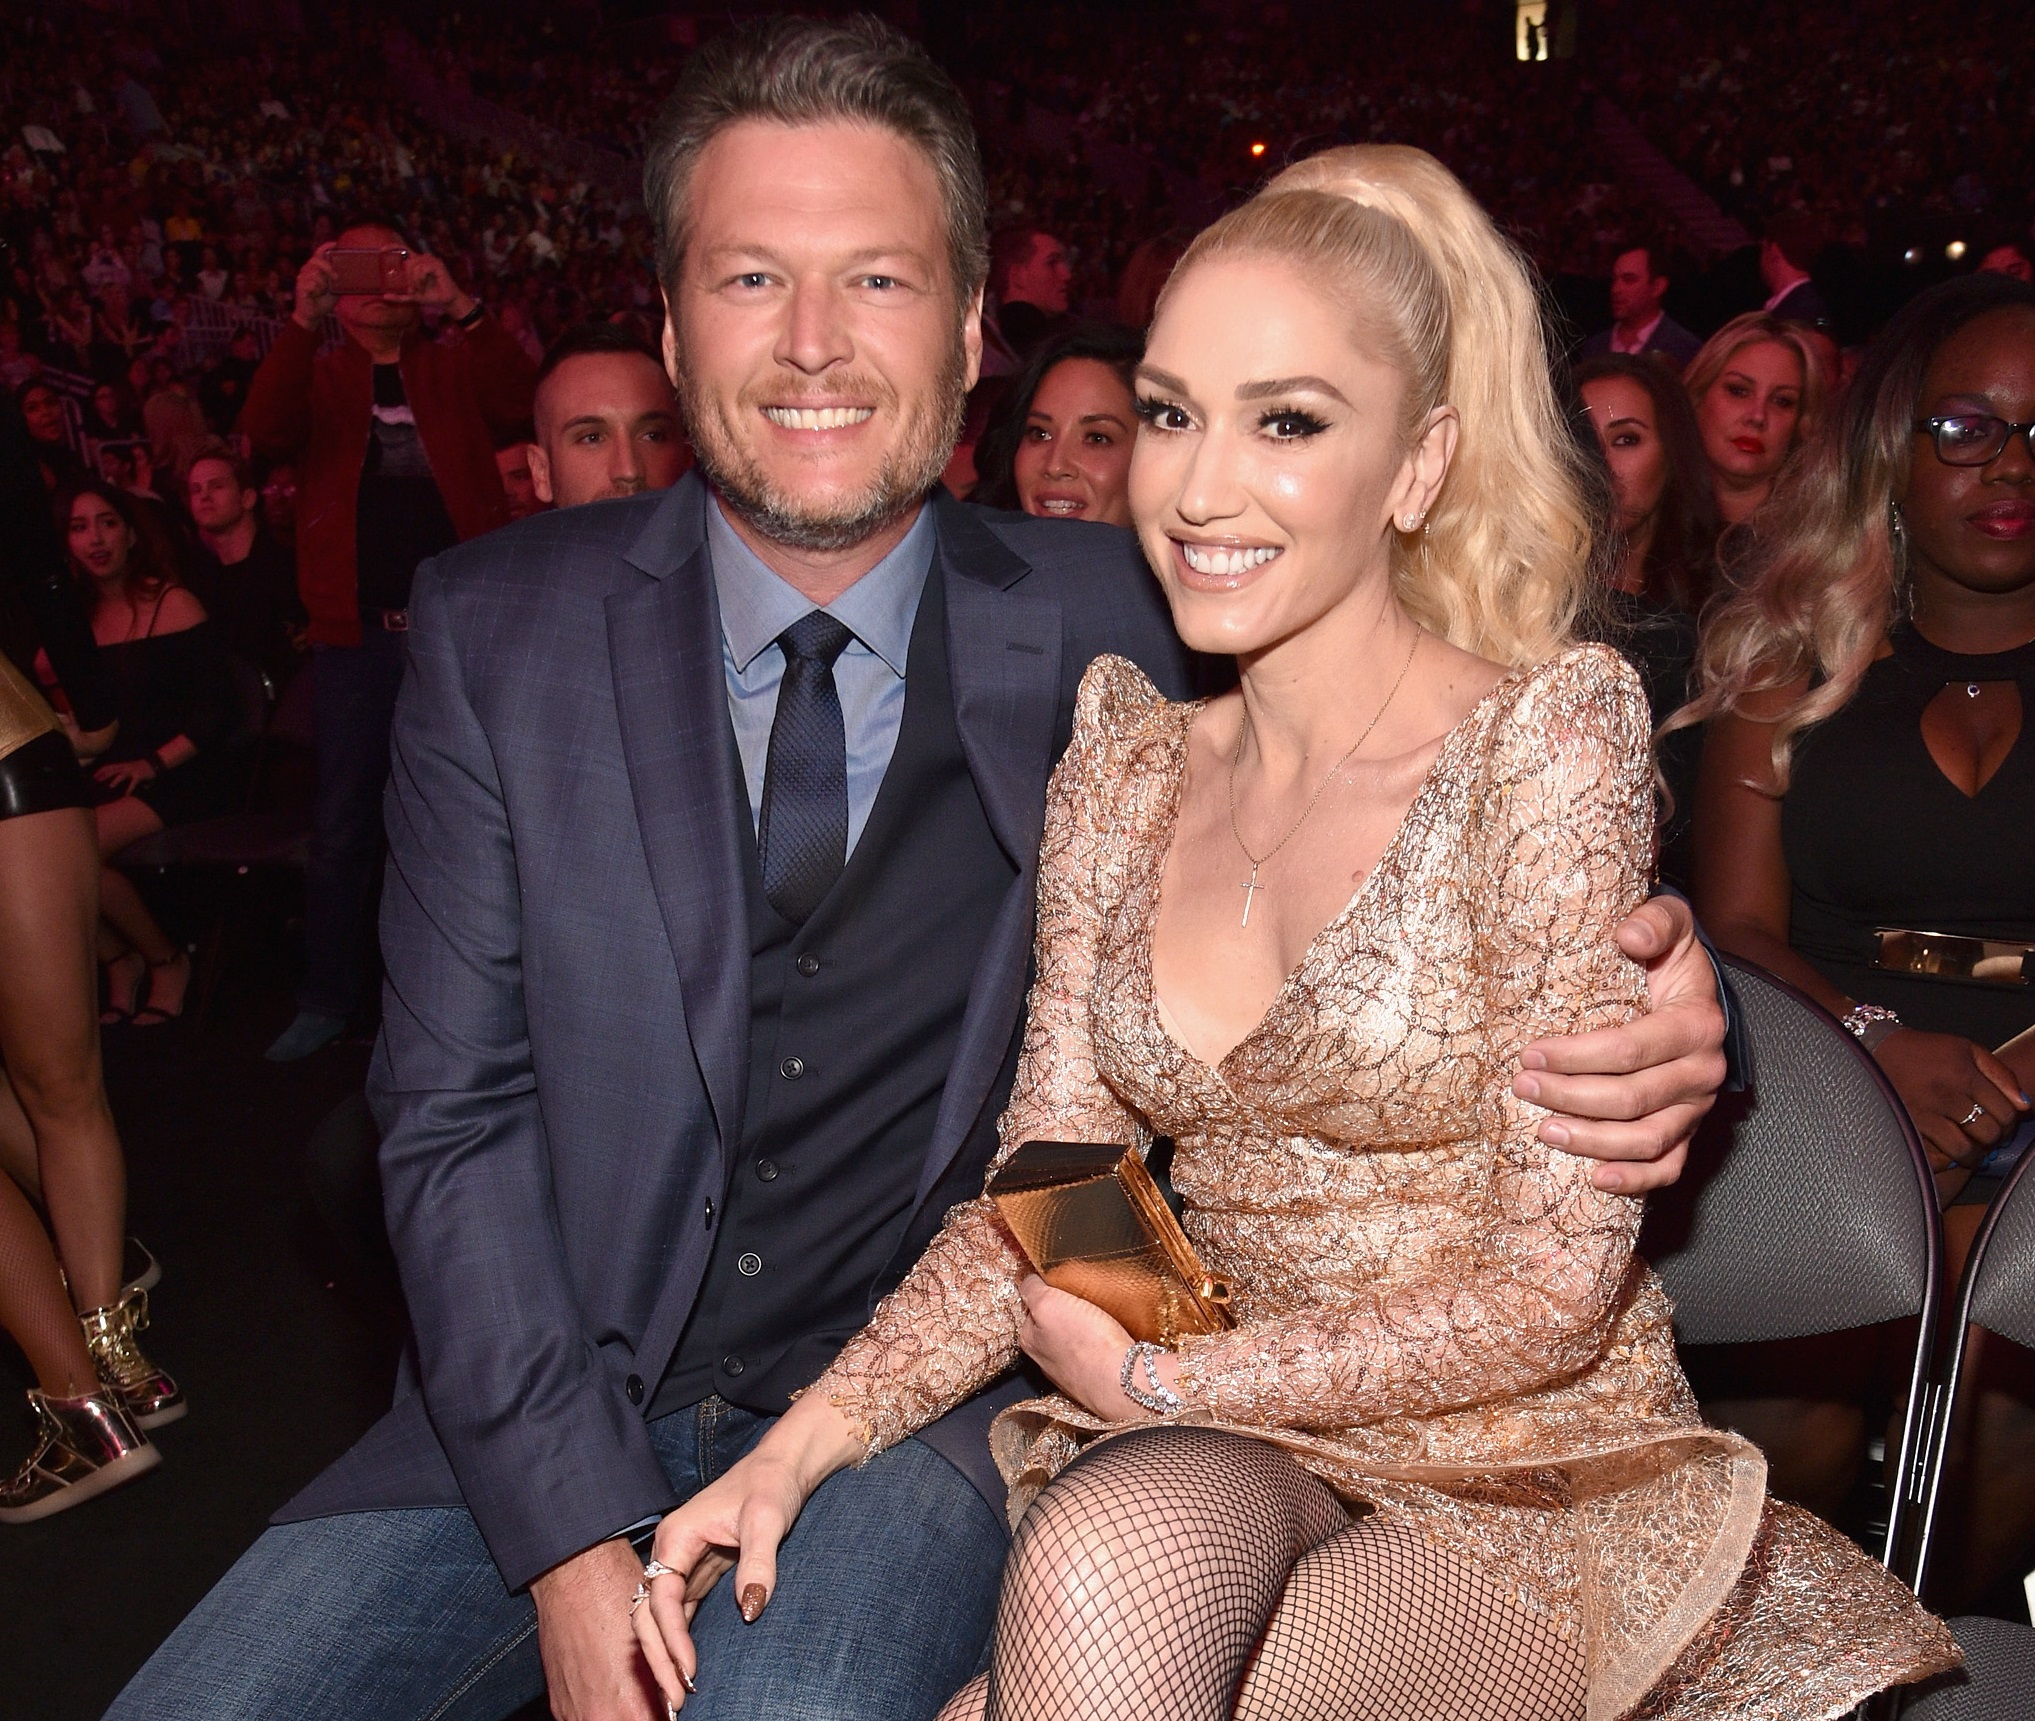 Gwen Stefani Teases New Christmas Song Featuring Blake Shelton